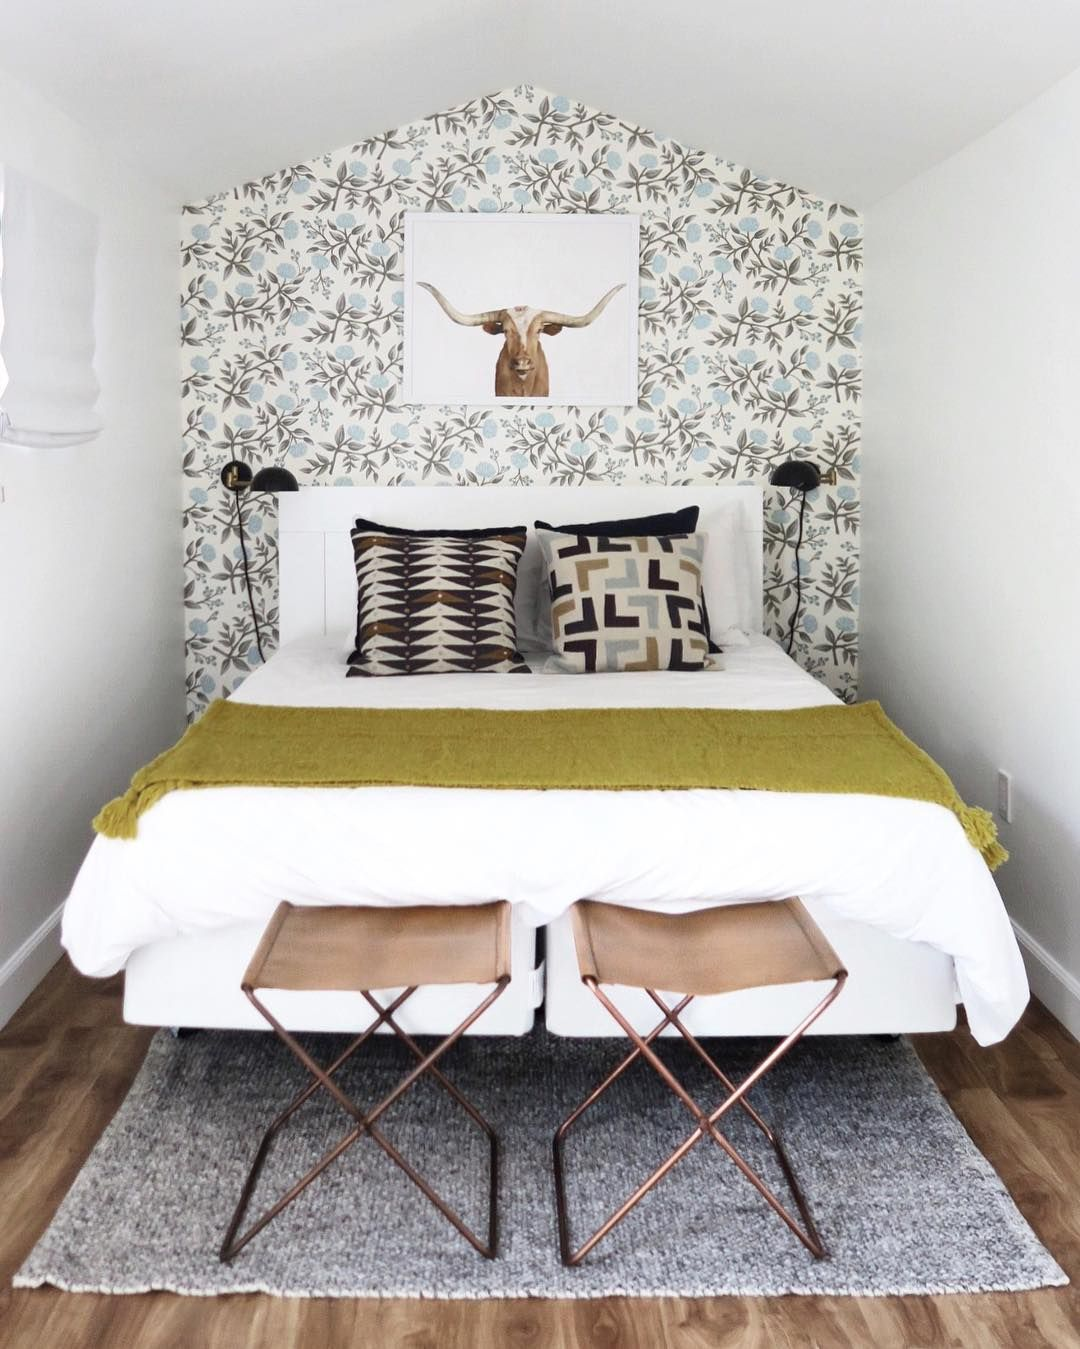 Two Small Stools Paired With A Small Rug And Wallpaper Small Apartment Bedrooms Small Guest Bedroom Small Bedroom Decor